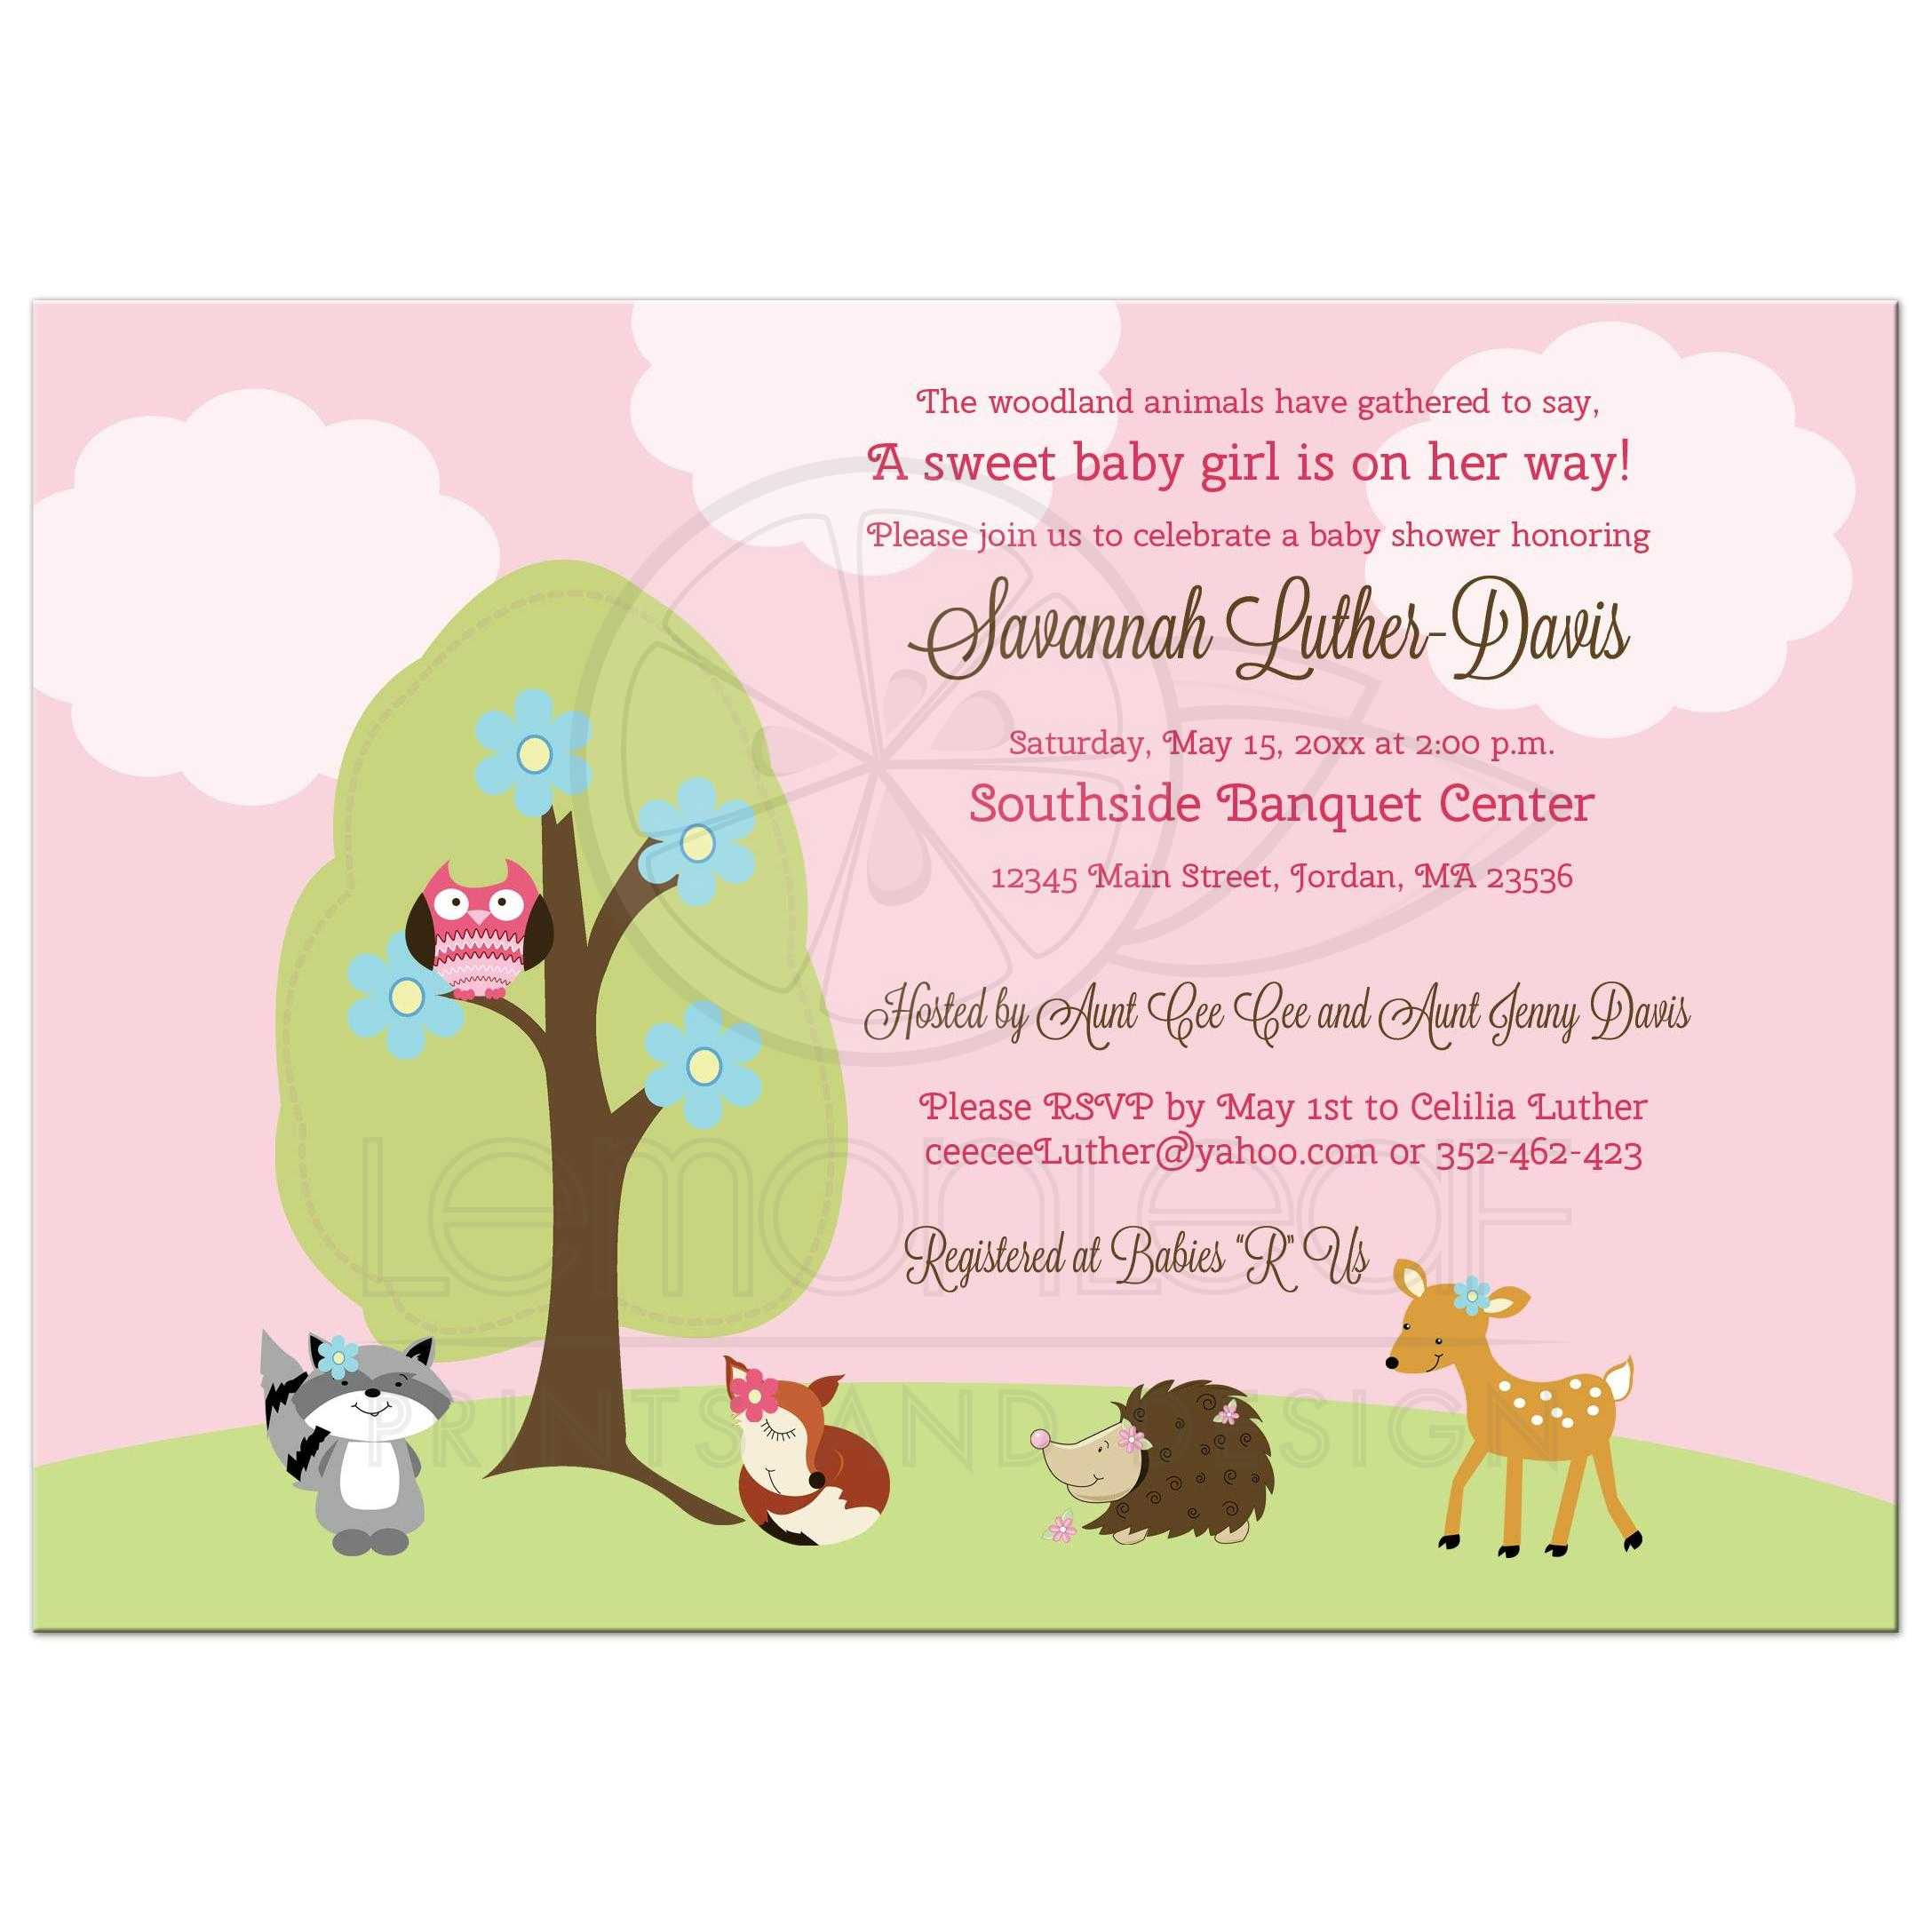 Girl forest animals baby shower invitation woodland girl forest animals baby shower invitation filmwisefo Image collections